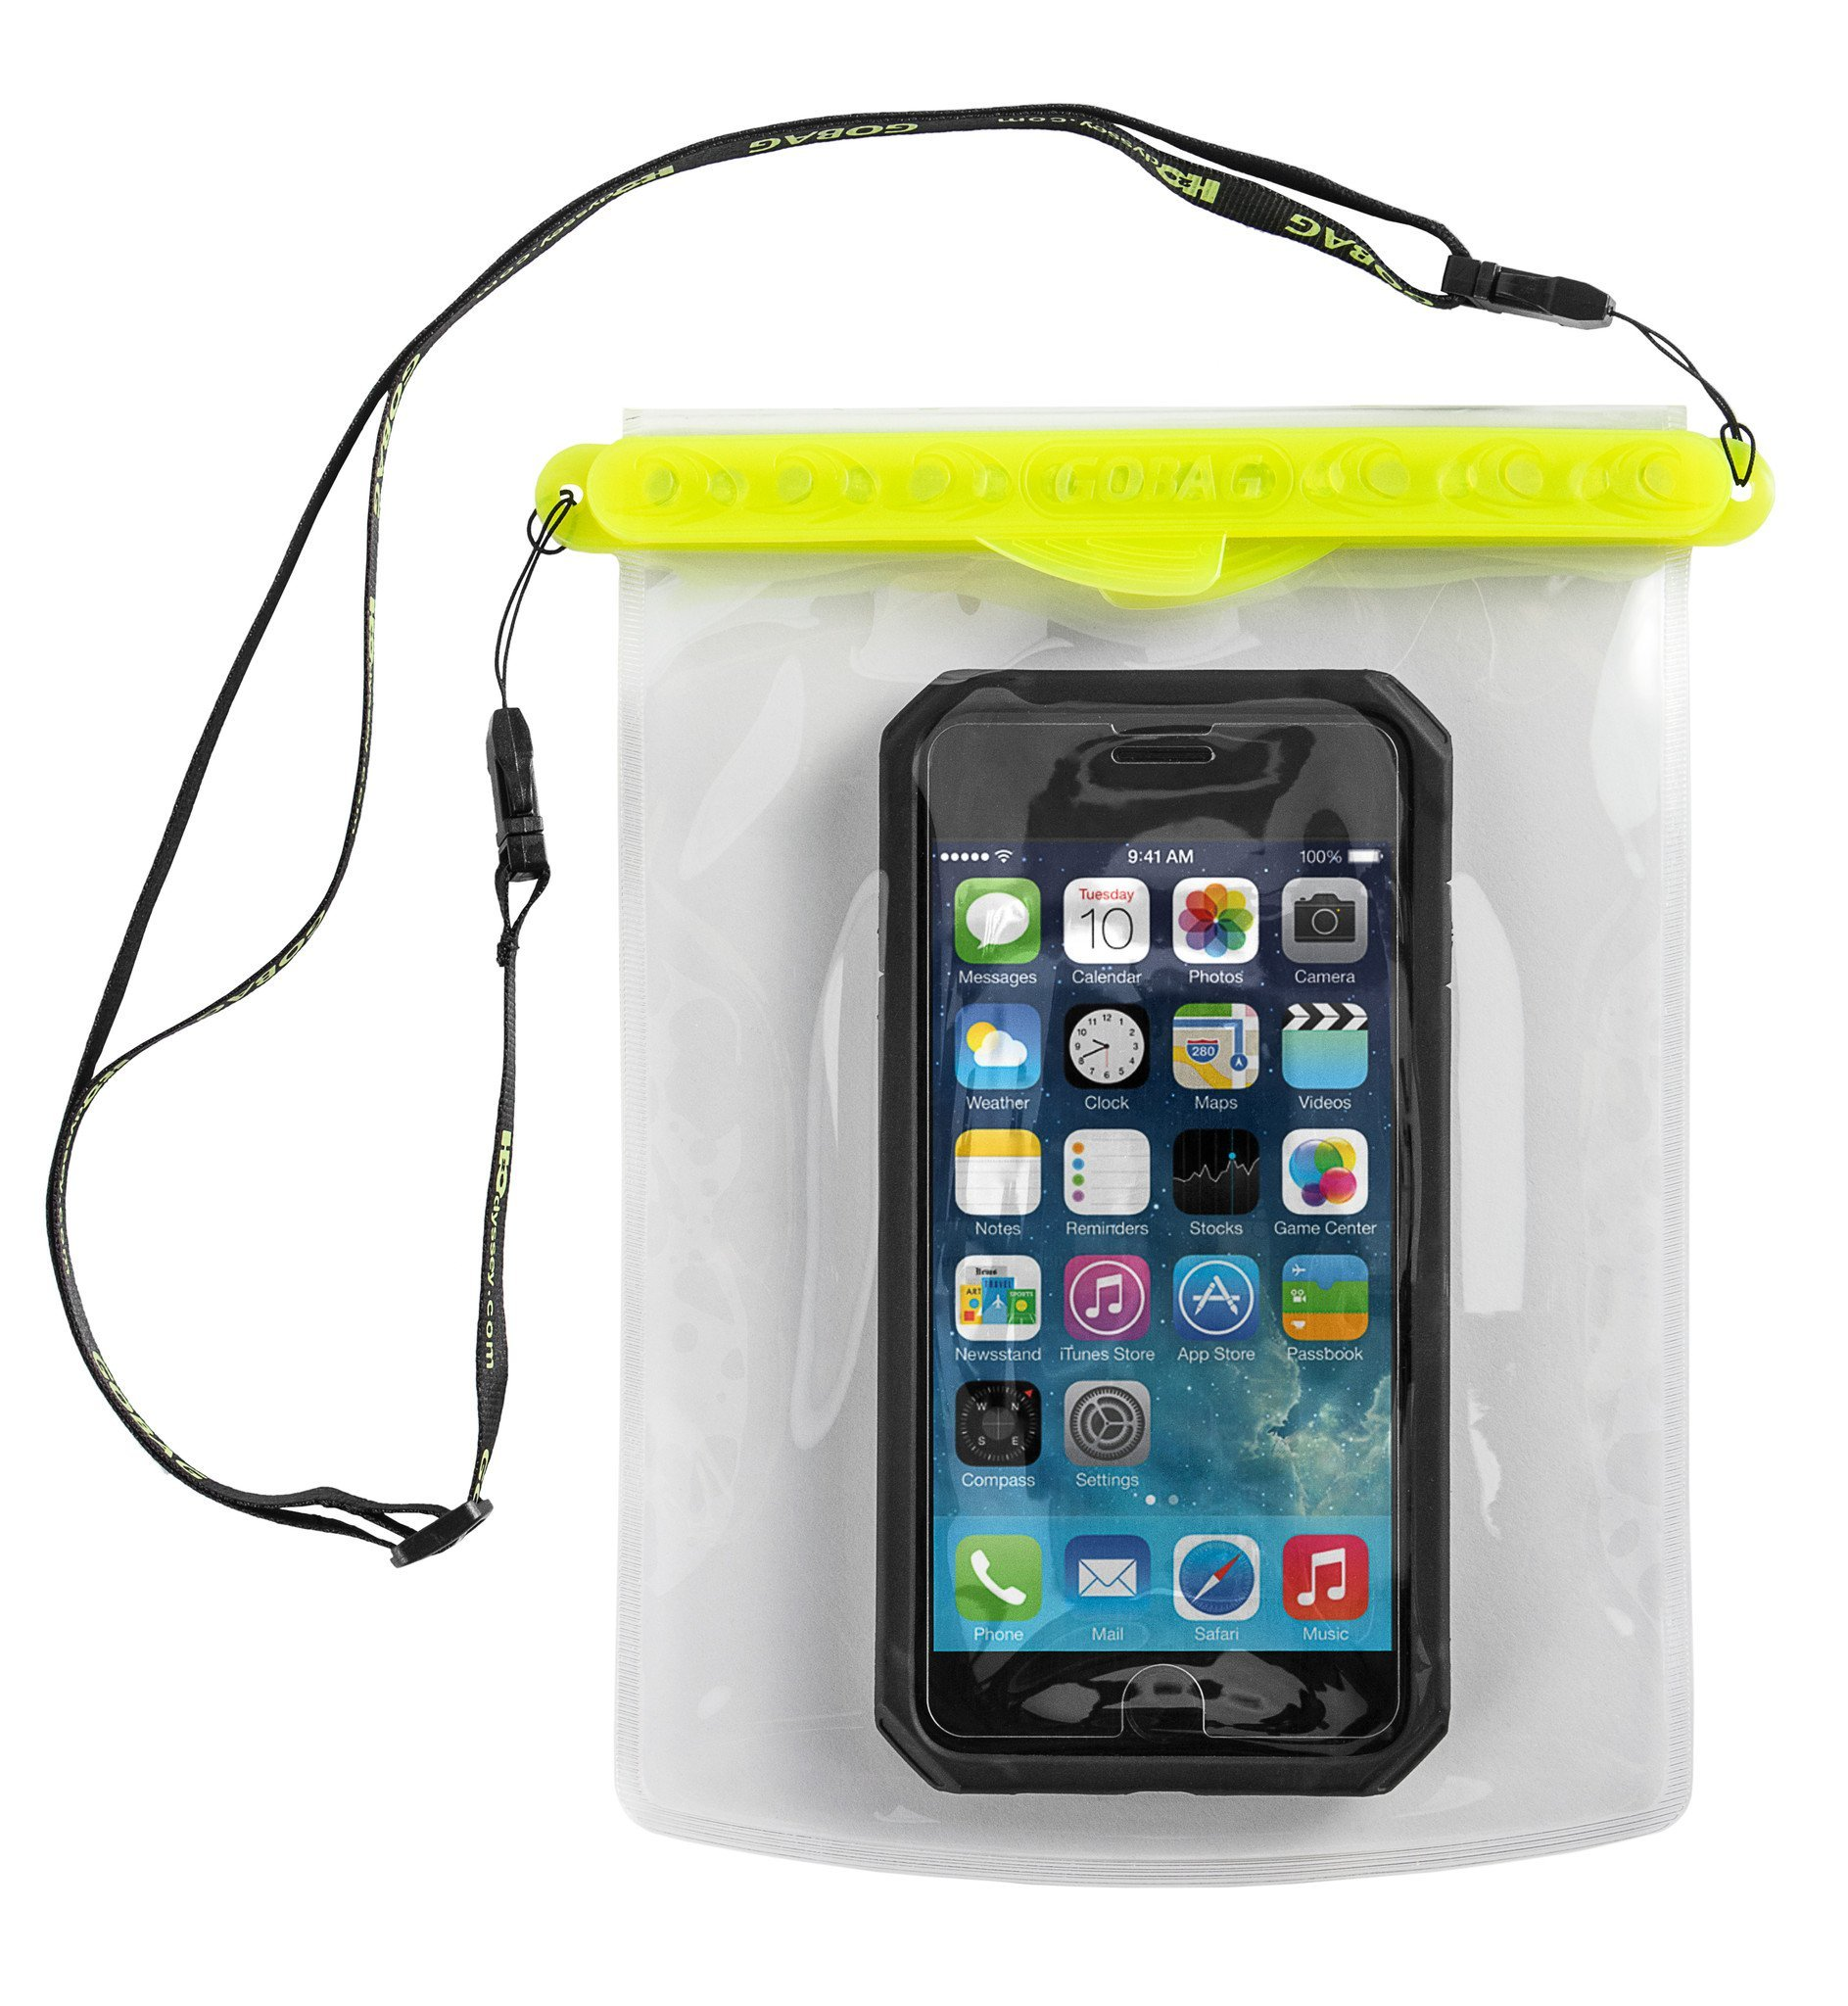 Go Bag Mako Dry Bag #1 Secure Air Tight Self-Sealing Magnetic Waterproof Case to 100 ft. Hermetic Seal Cell Phone Touchscreen Sensitive 7.5'' x 5.75'' Fits iPhone 6,7 8 + Plus (Yellow) by Go Bag (Image #1)